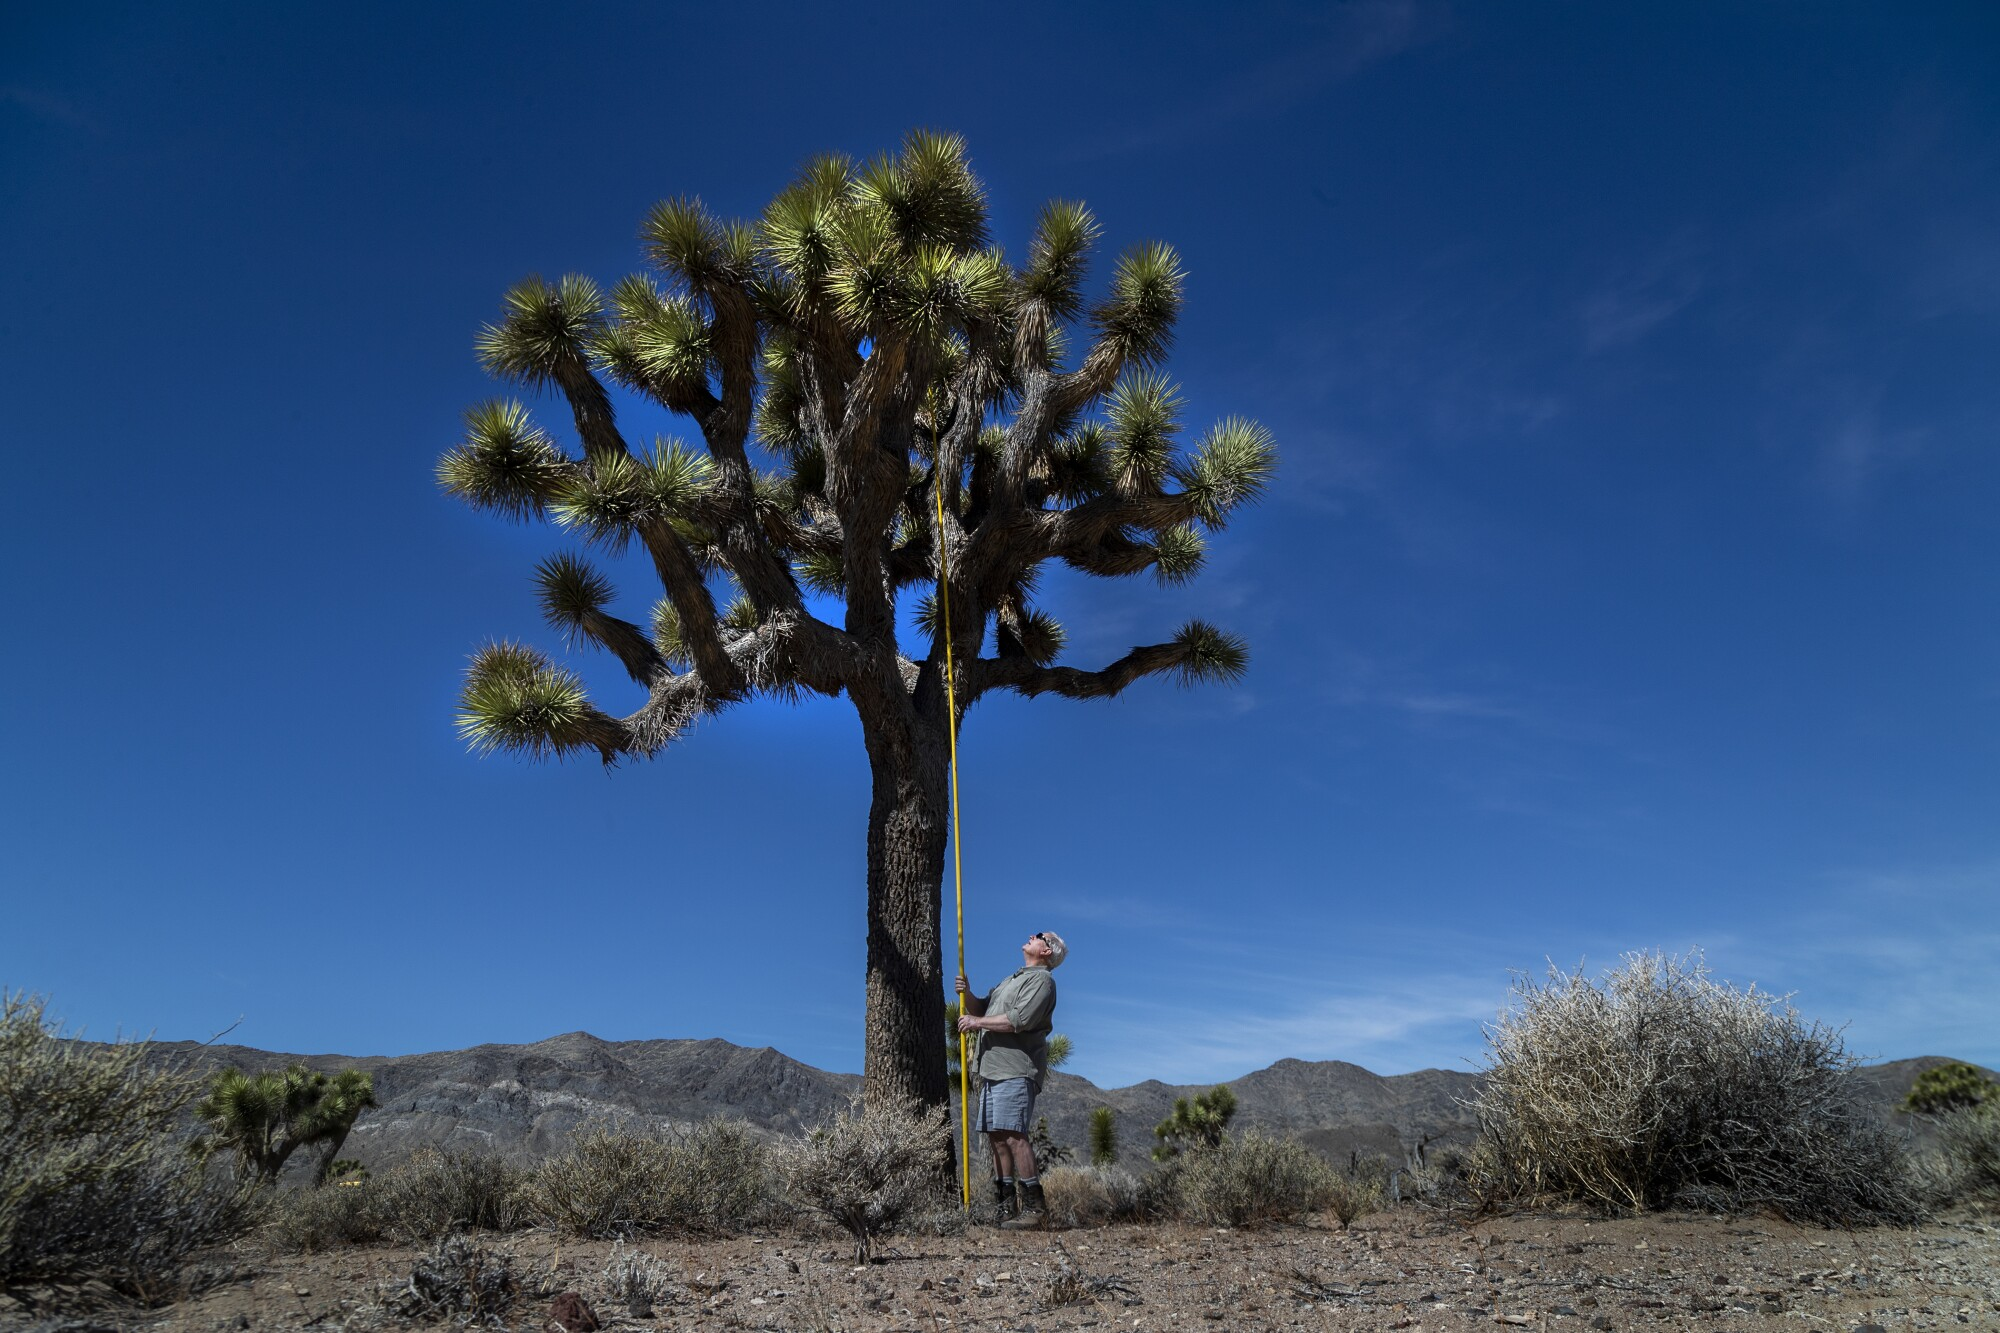 A person holds a long instrument against a Joshua tree.